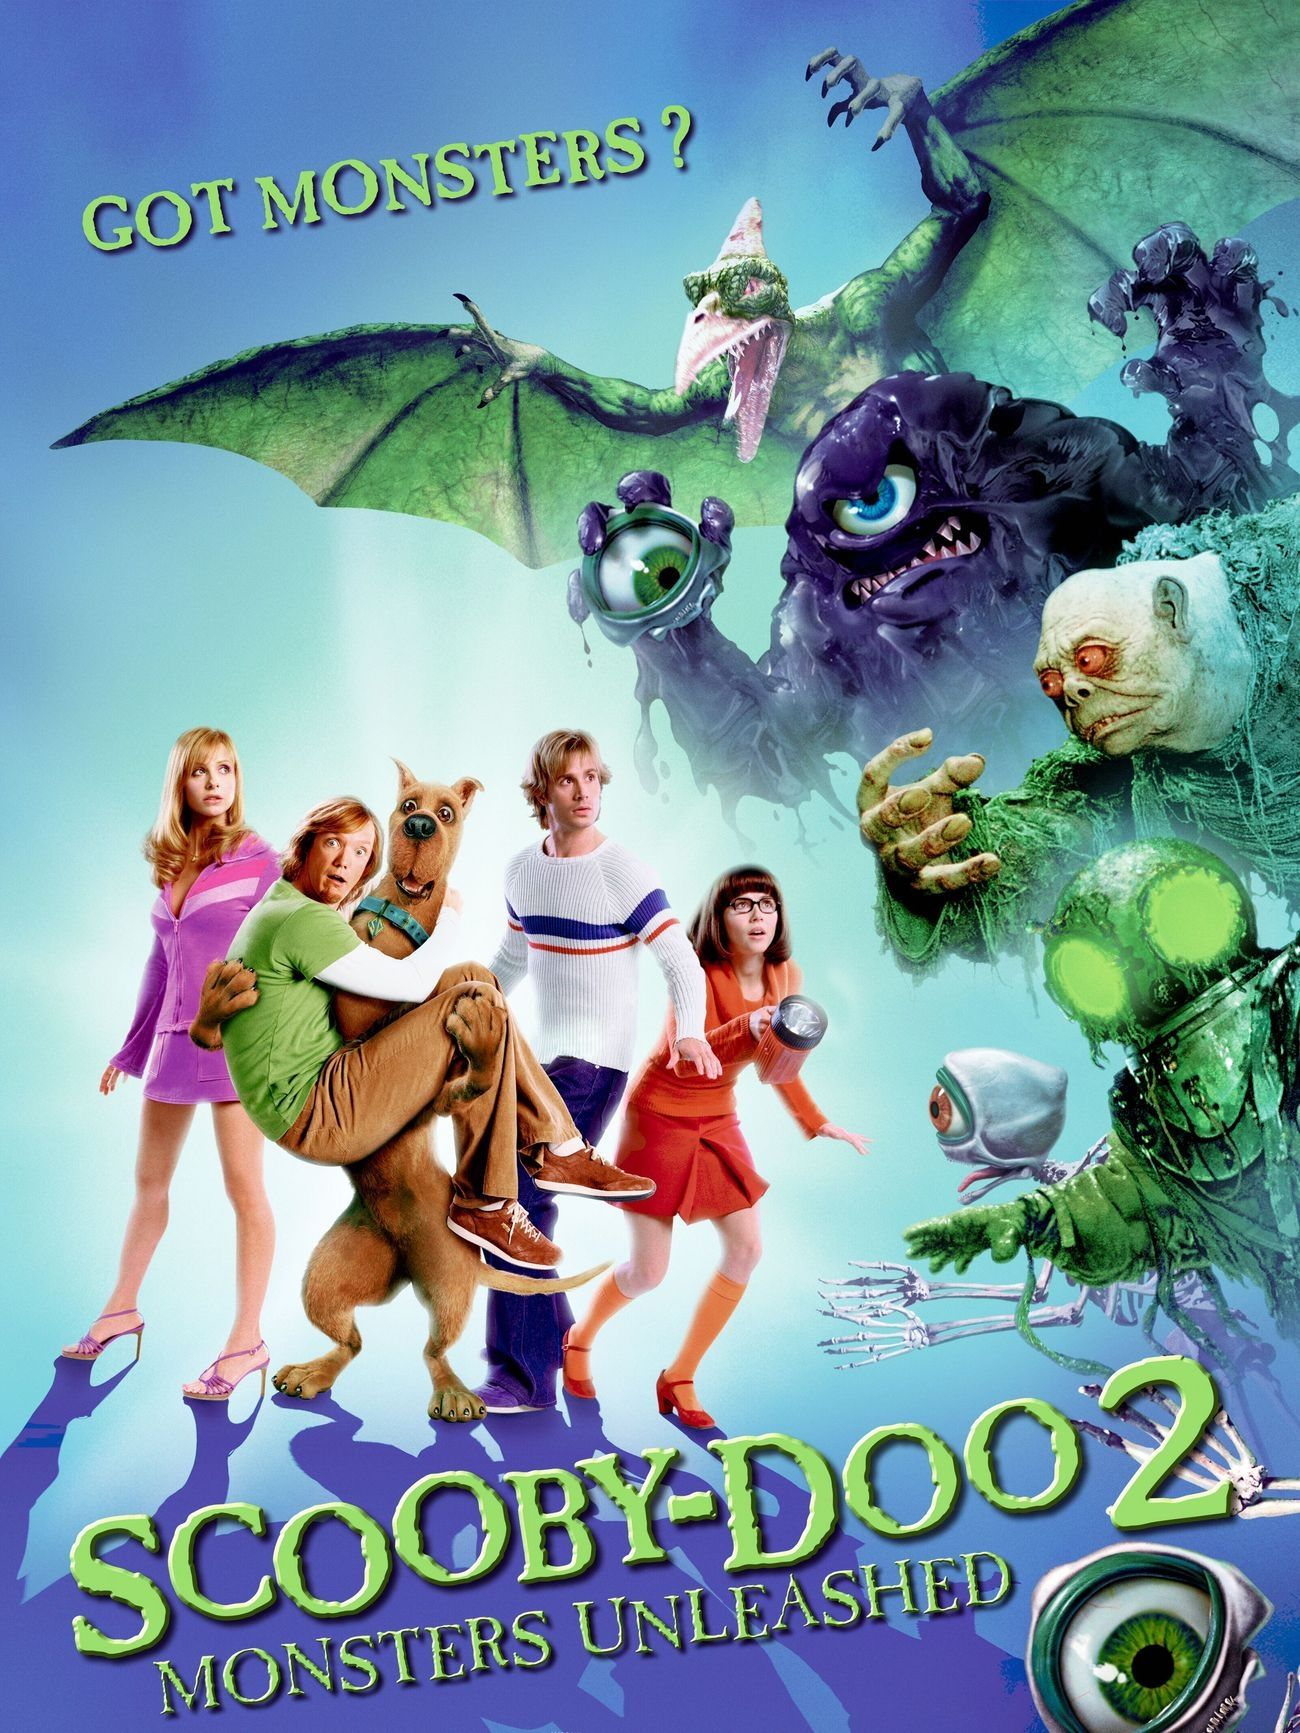 Scoo Doo 2 Monsters Unleashed Cast And Crew Tv Guide Regarding The Incredible Scooby Doo Monsters Unleashed In 2020 The Incredibles Scooby Doo Scooby